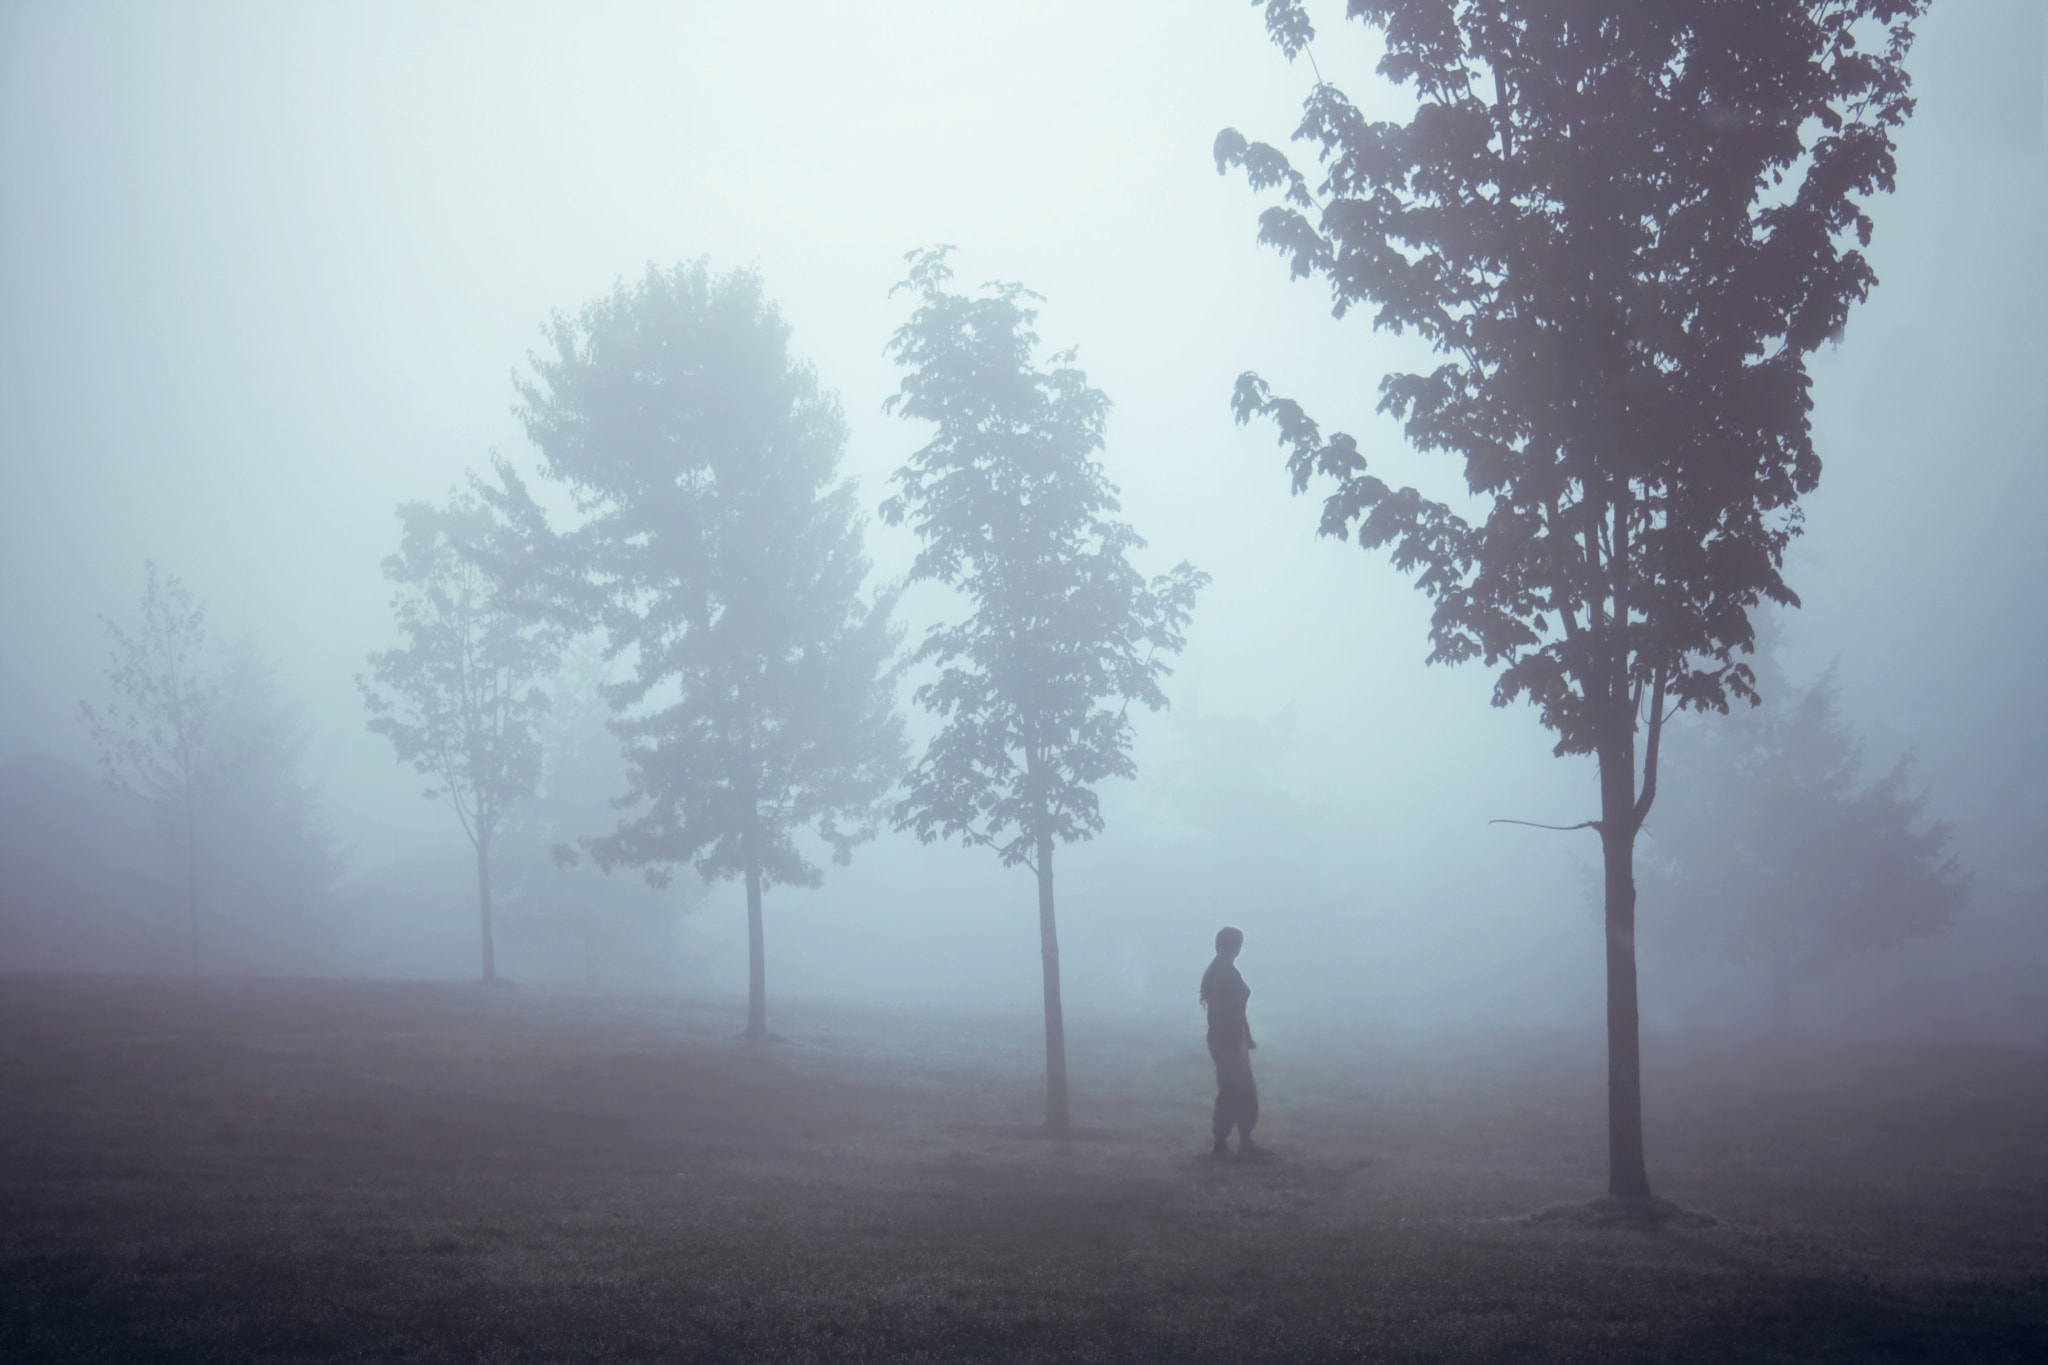 Photograph Morning Mist by Lizzy Gadd on 500px